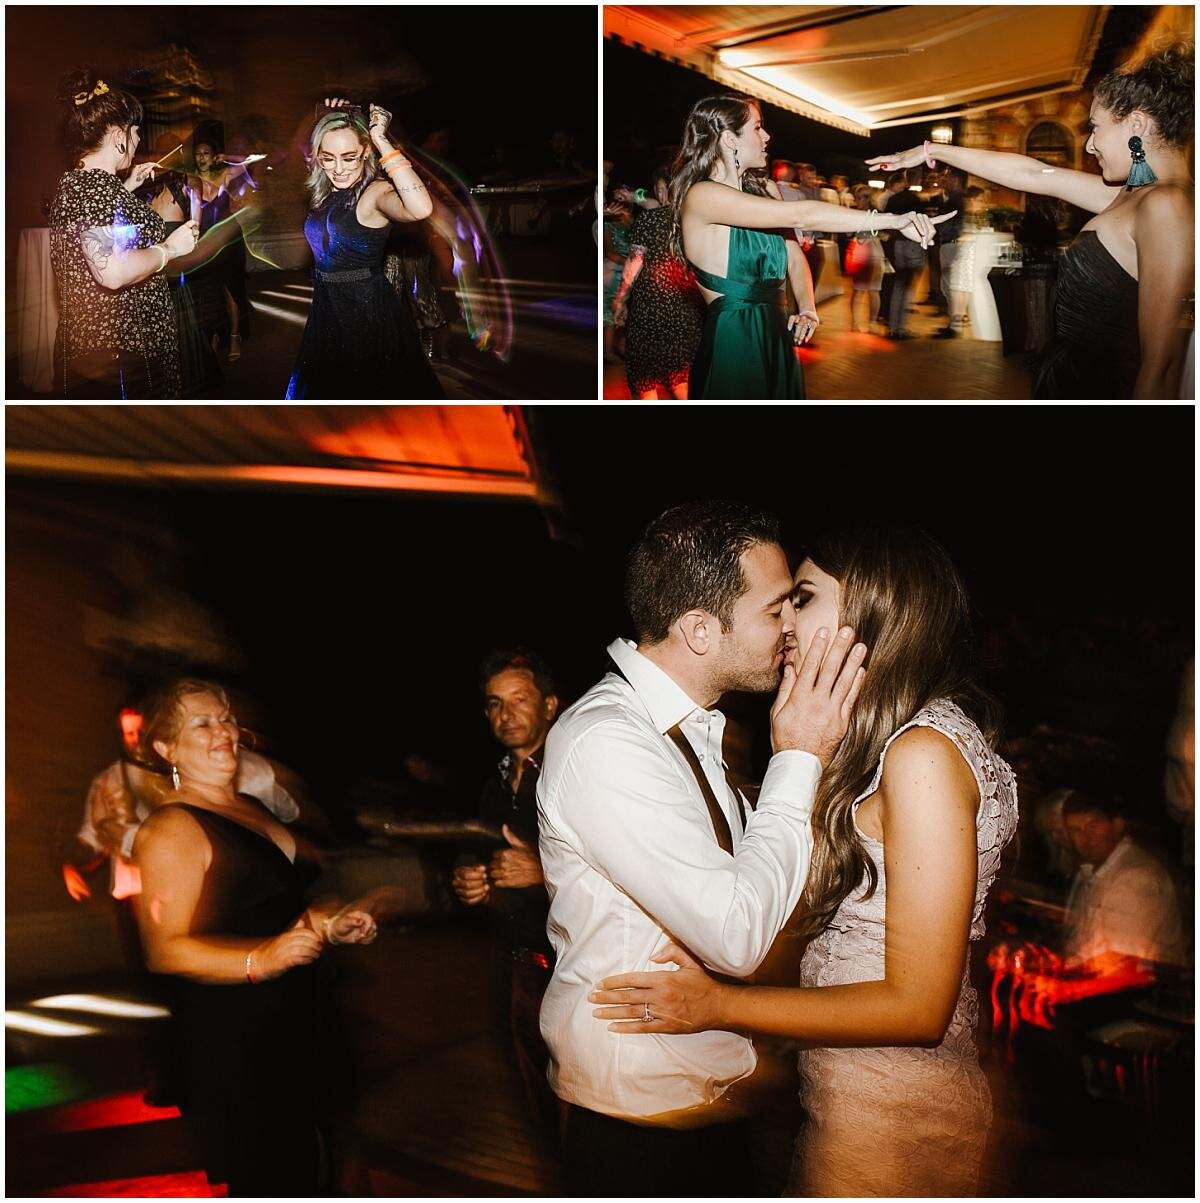 party-time-at-the-wedding